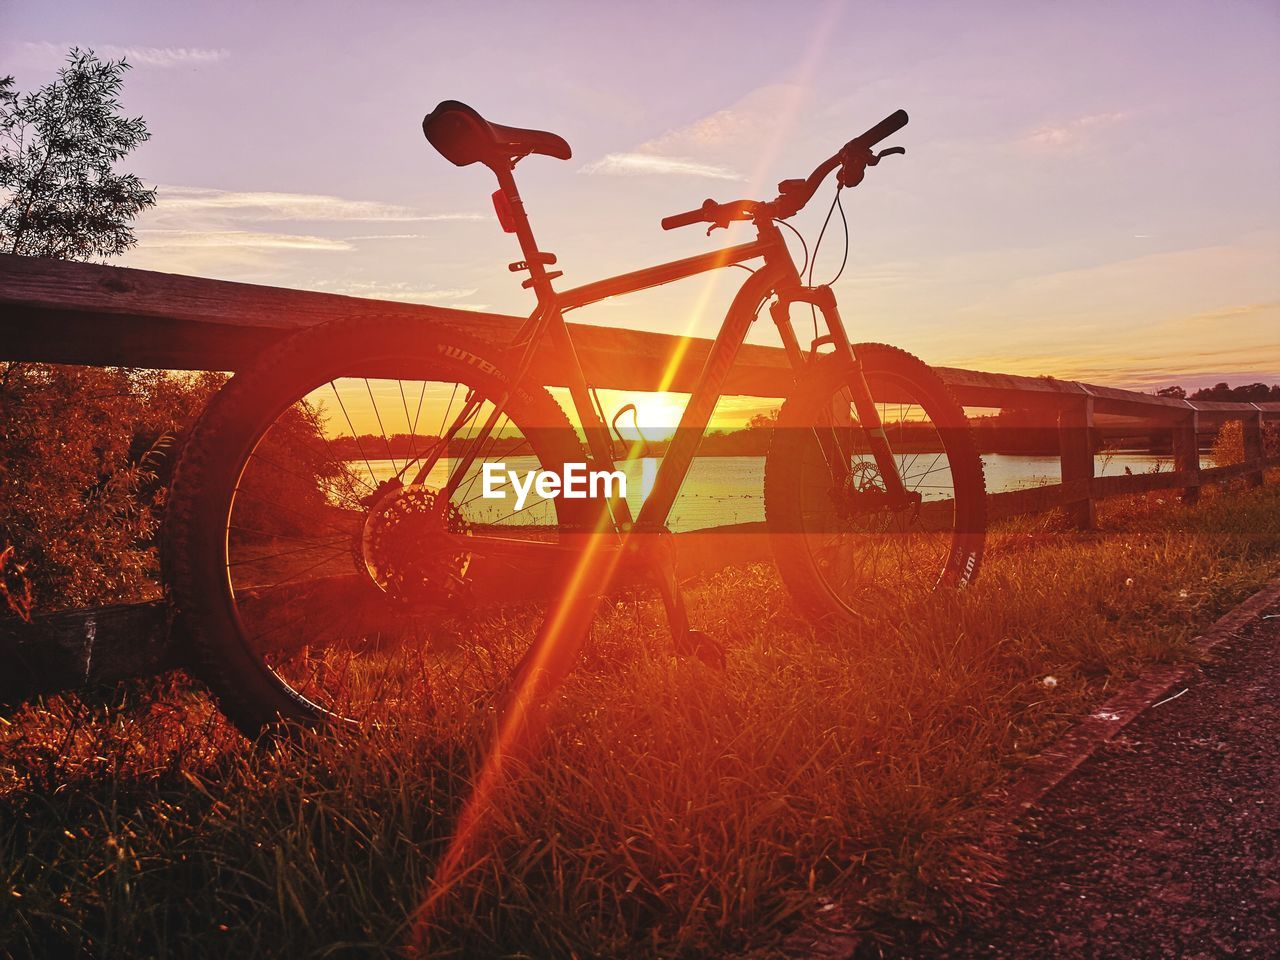 sunset, sky, transportation, bicycle, orange color, nature, land, mode of transportation, land vehicle, field, sunlight, grass, plant, stationary, beauty in nature, lens flare, sun, outdoors, scenics - nature, no people, wheel